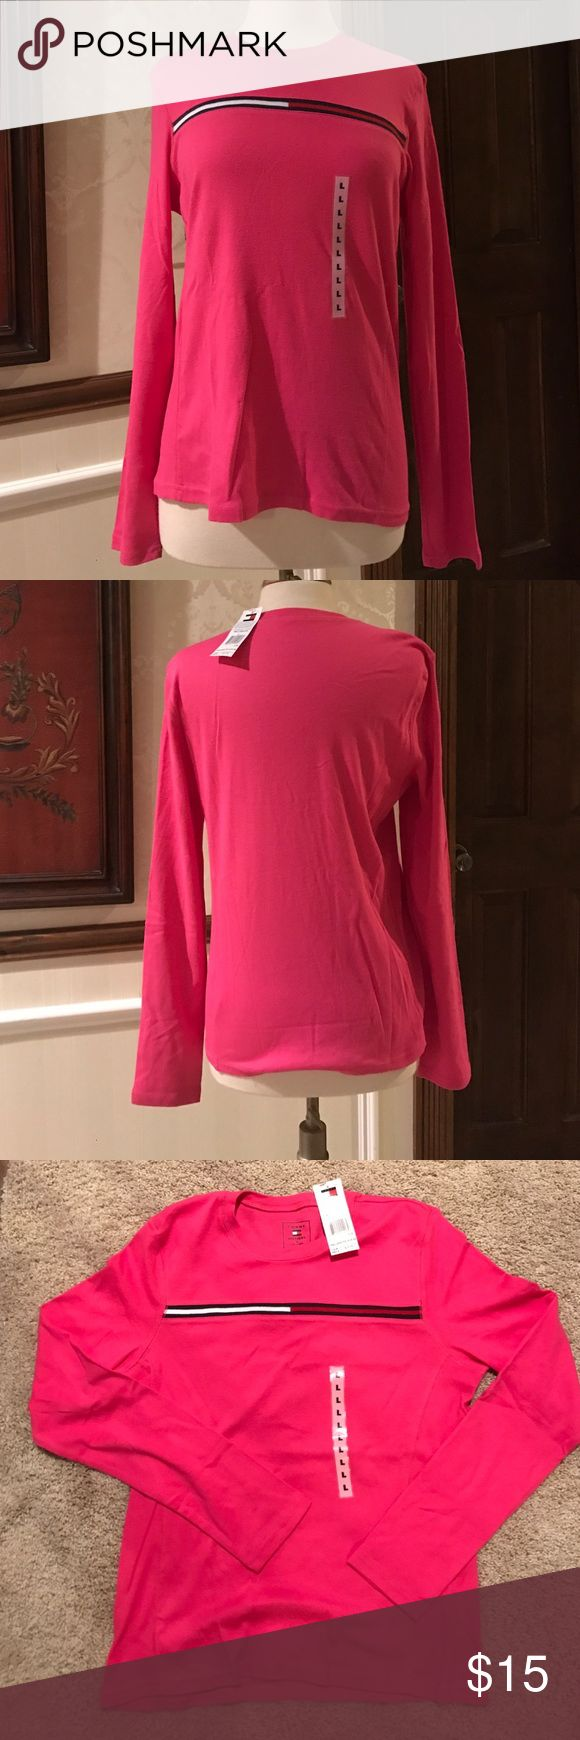 Tommy Hilfiger Pink Long Sleeved T-Shirt Tommy Hilfiger Pink long sleeved athletic style loose t-shirt. The item is brand new with tags and has the signature Tommy Hilfiger logo knitted into the design of the shirt. There is a ribbed section on either side of the shirt apart from that the shirt is plain. 100 % cotton. US size L. Tommy Hilfiger Tops Tees - Long Sleeve